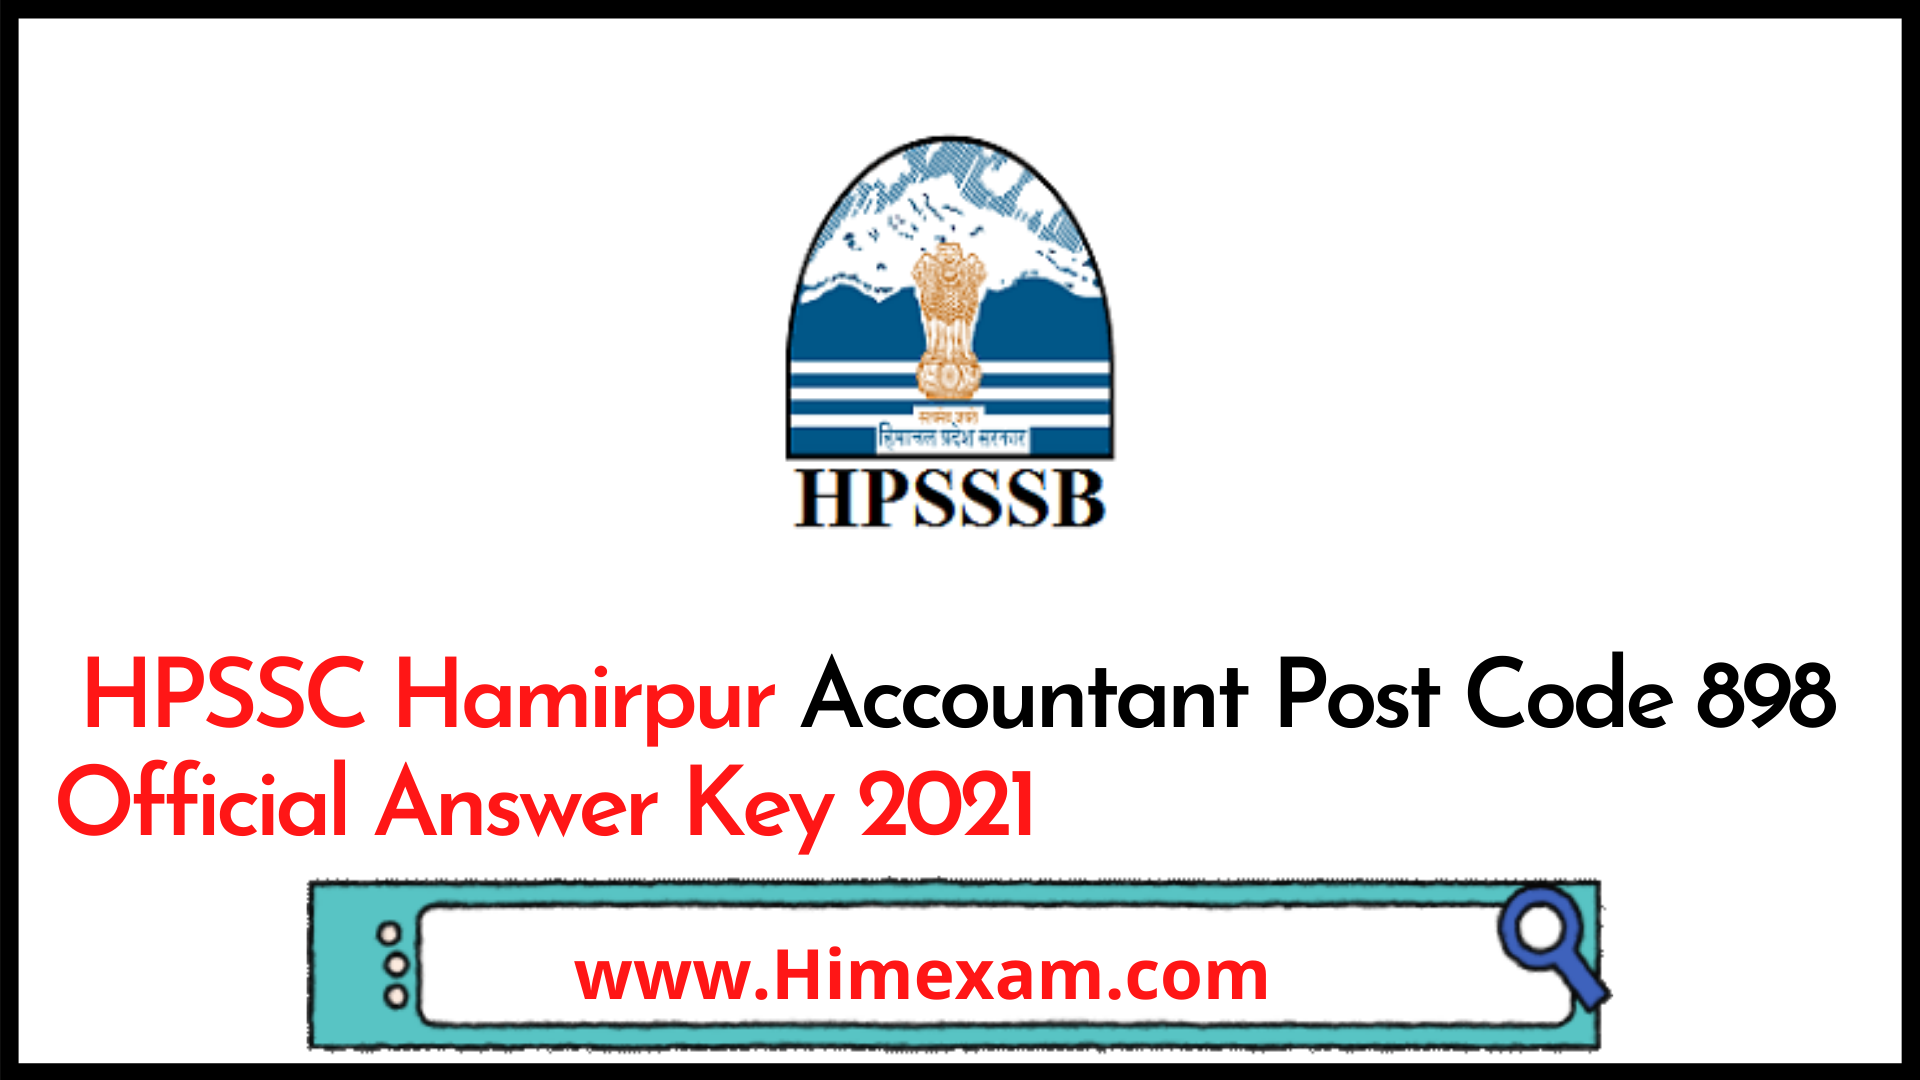 HPSSC Hamirpur Accountant Post Code 898 Official Answer Key 2021